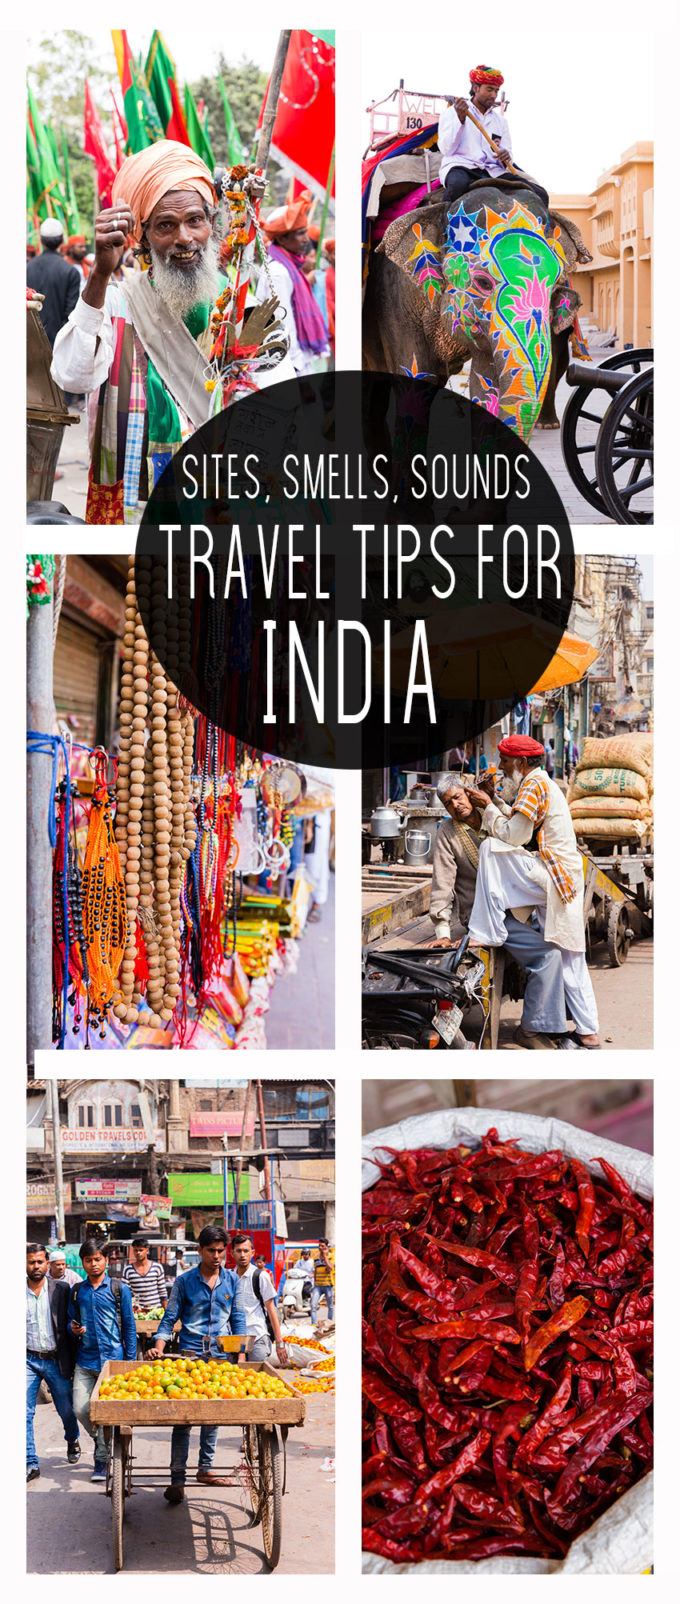 All the sites, sounds, and smells of India, how it is so unique and such a great place to visit.